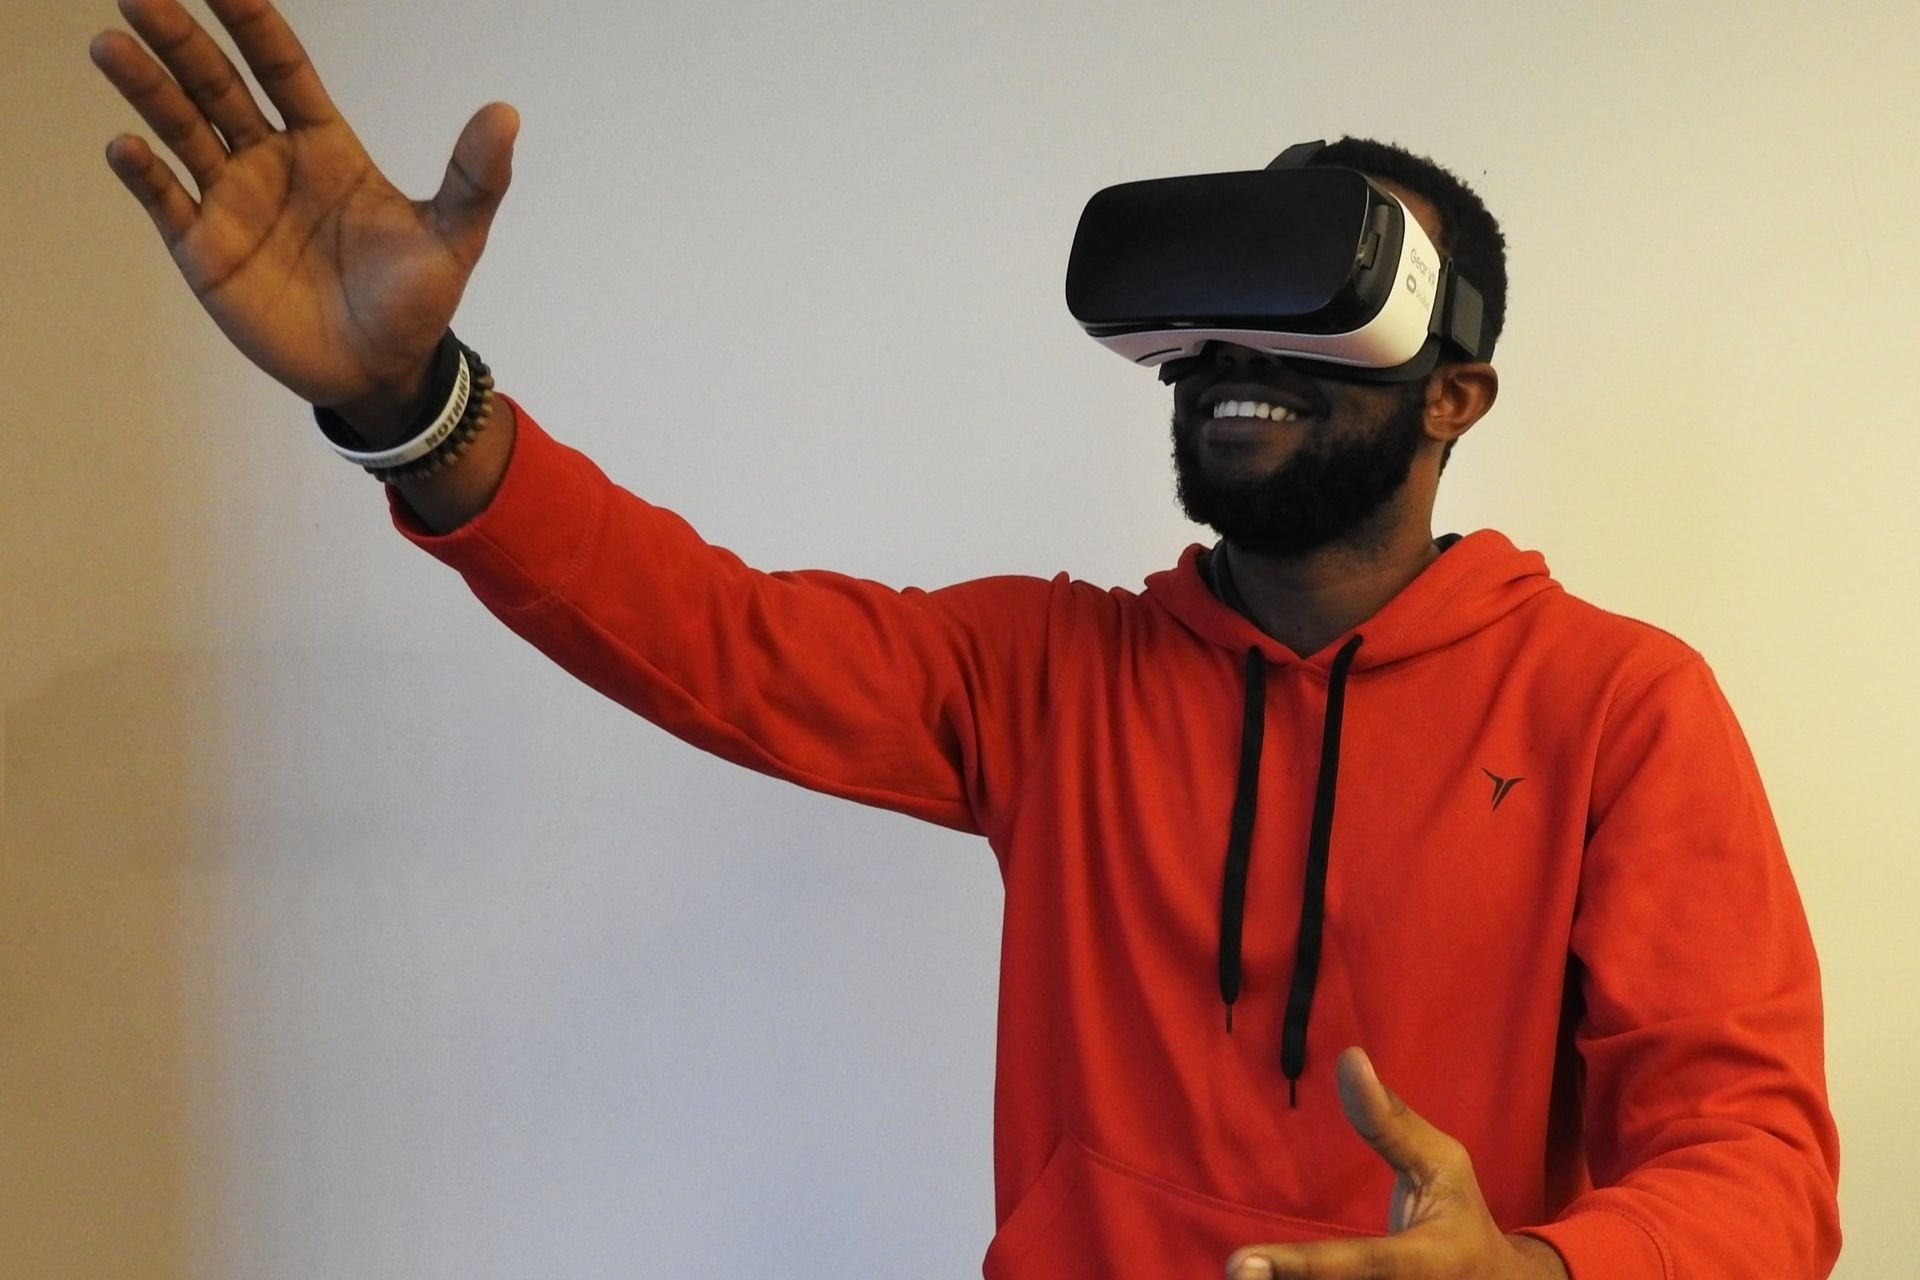 Student wearing virtual reality headset, to portray future focus